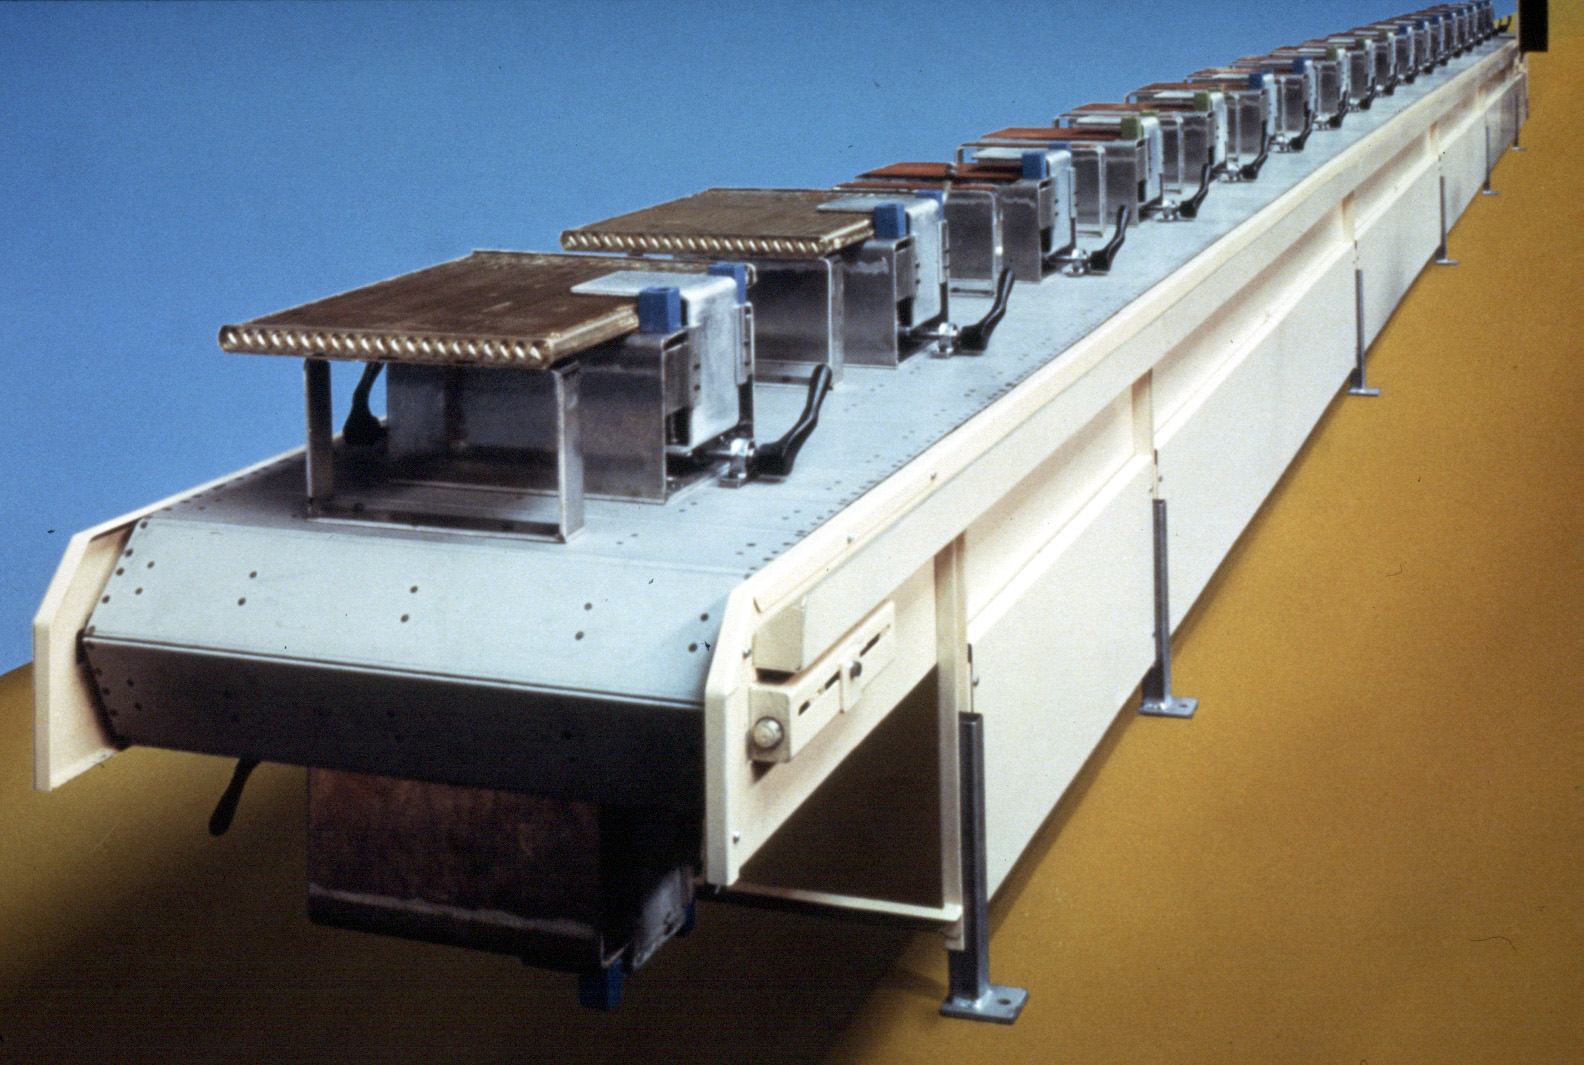 Kornylak manufactures a variety of conveyor systems for manufacturing, material handling and insulation production.